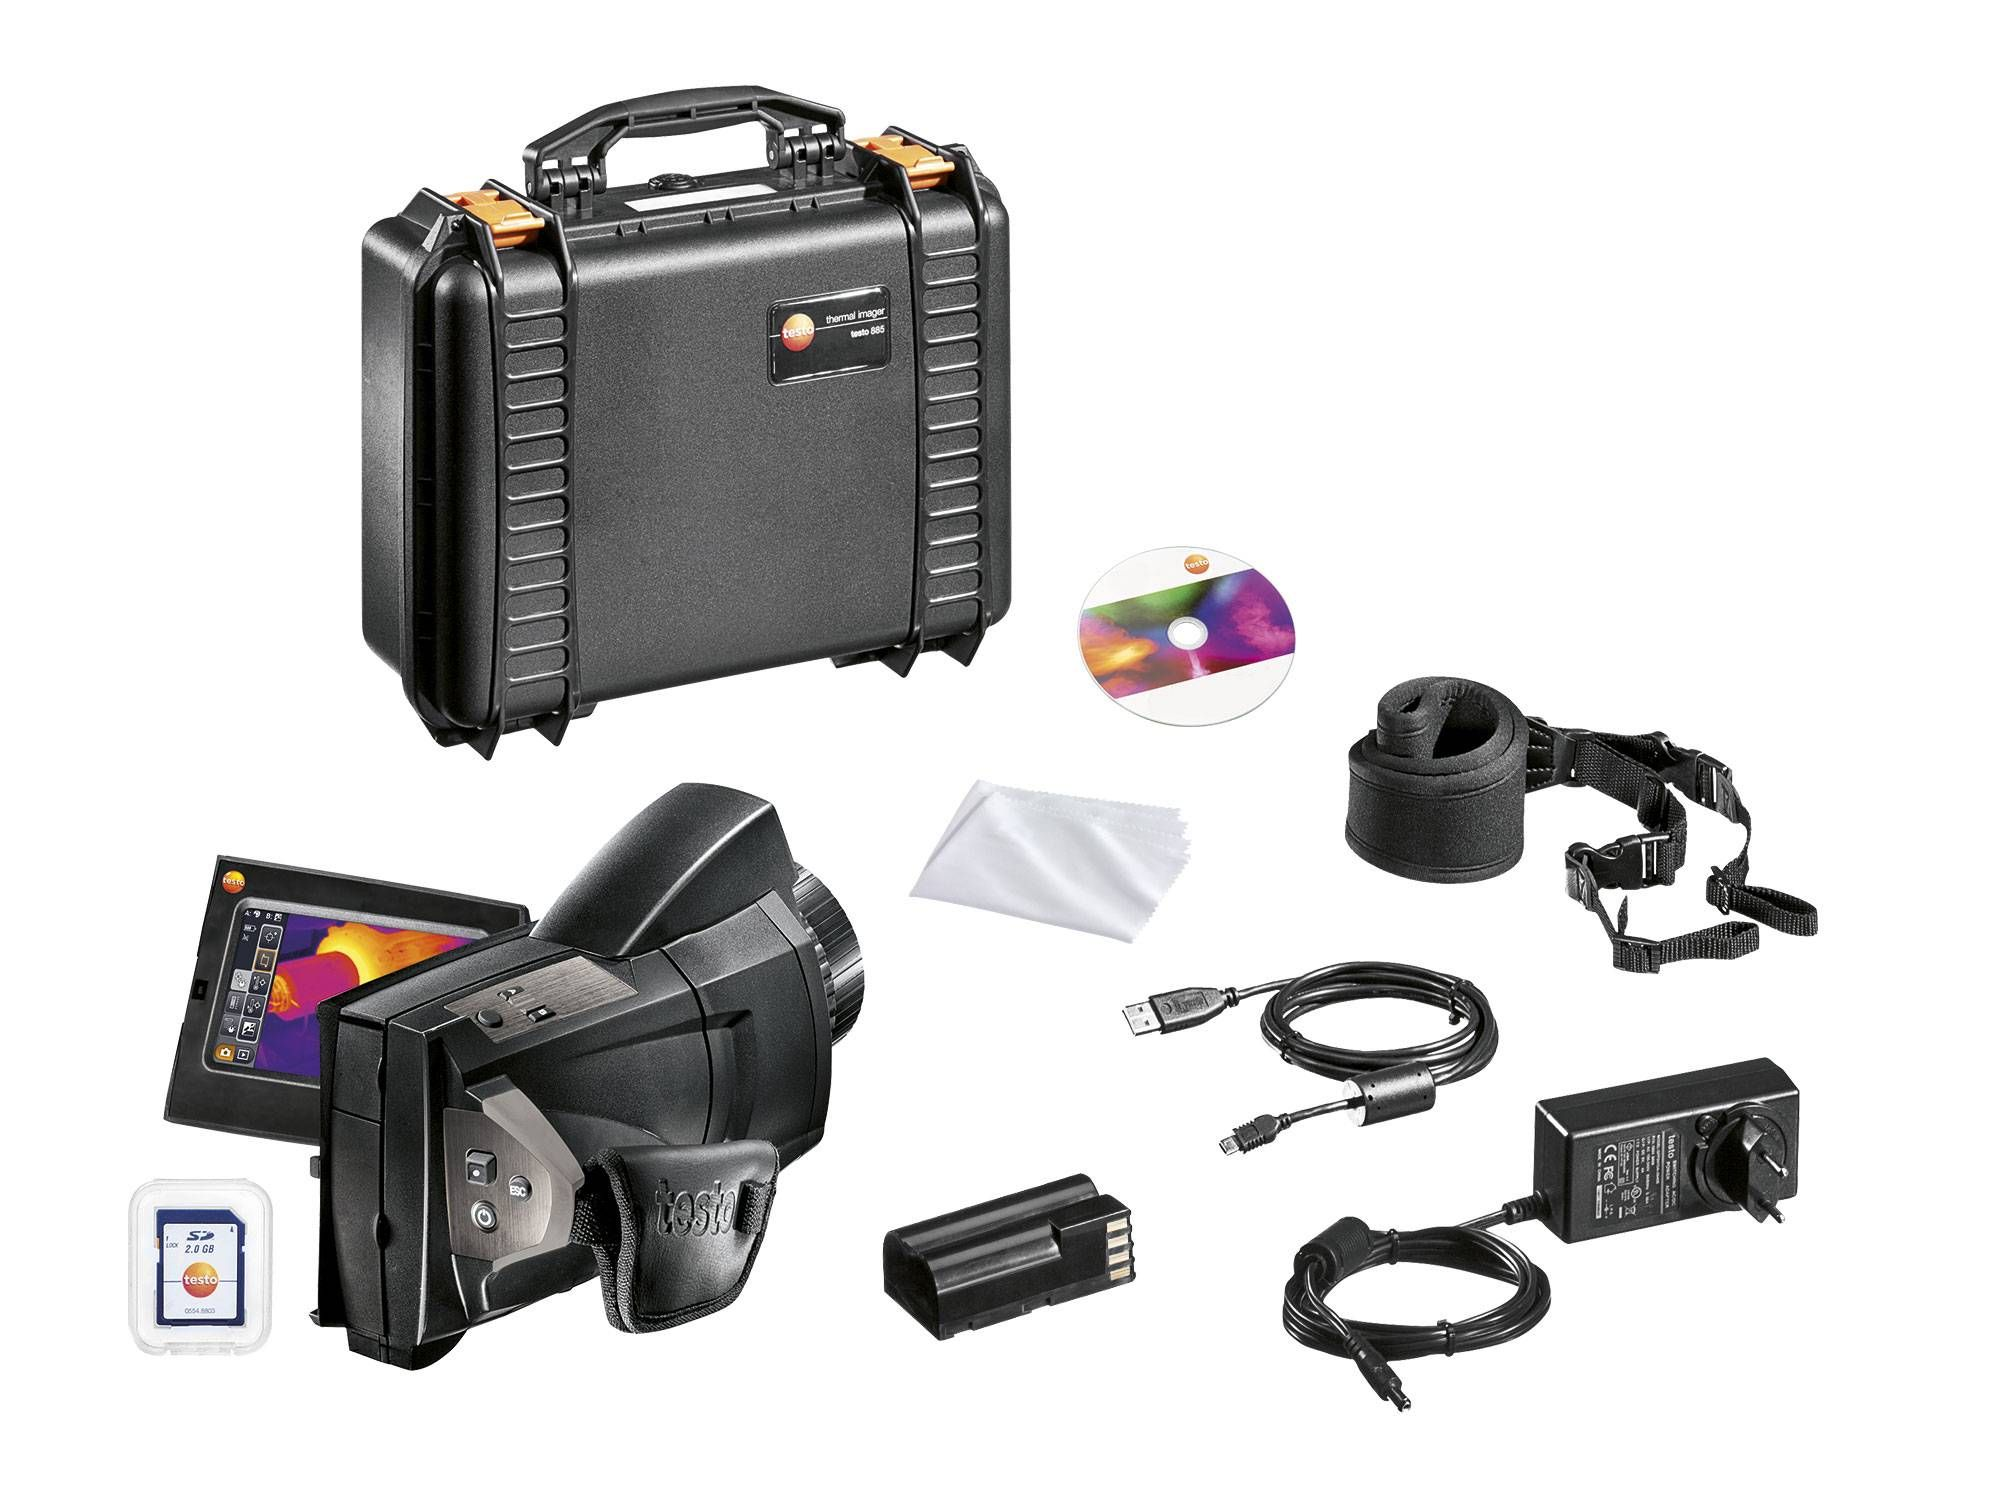 testo 885 - Thermal imager